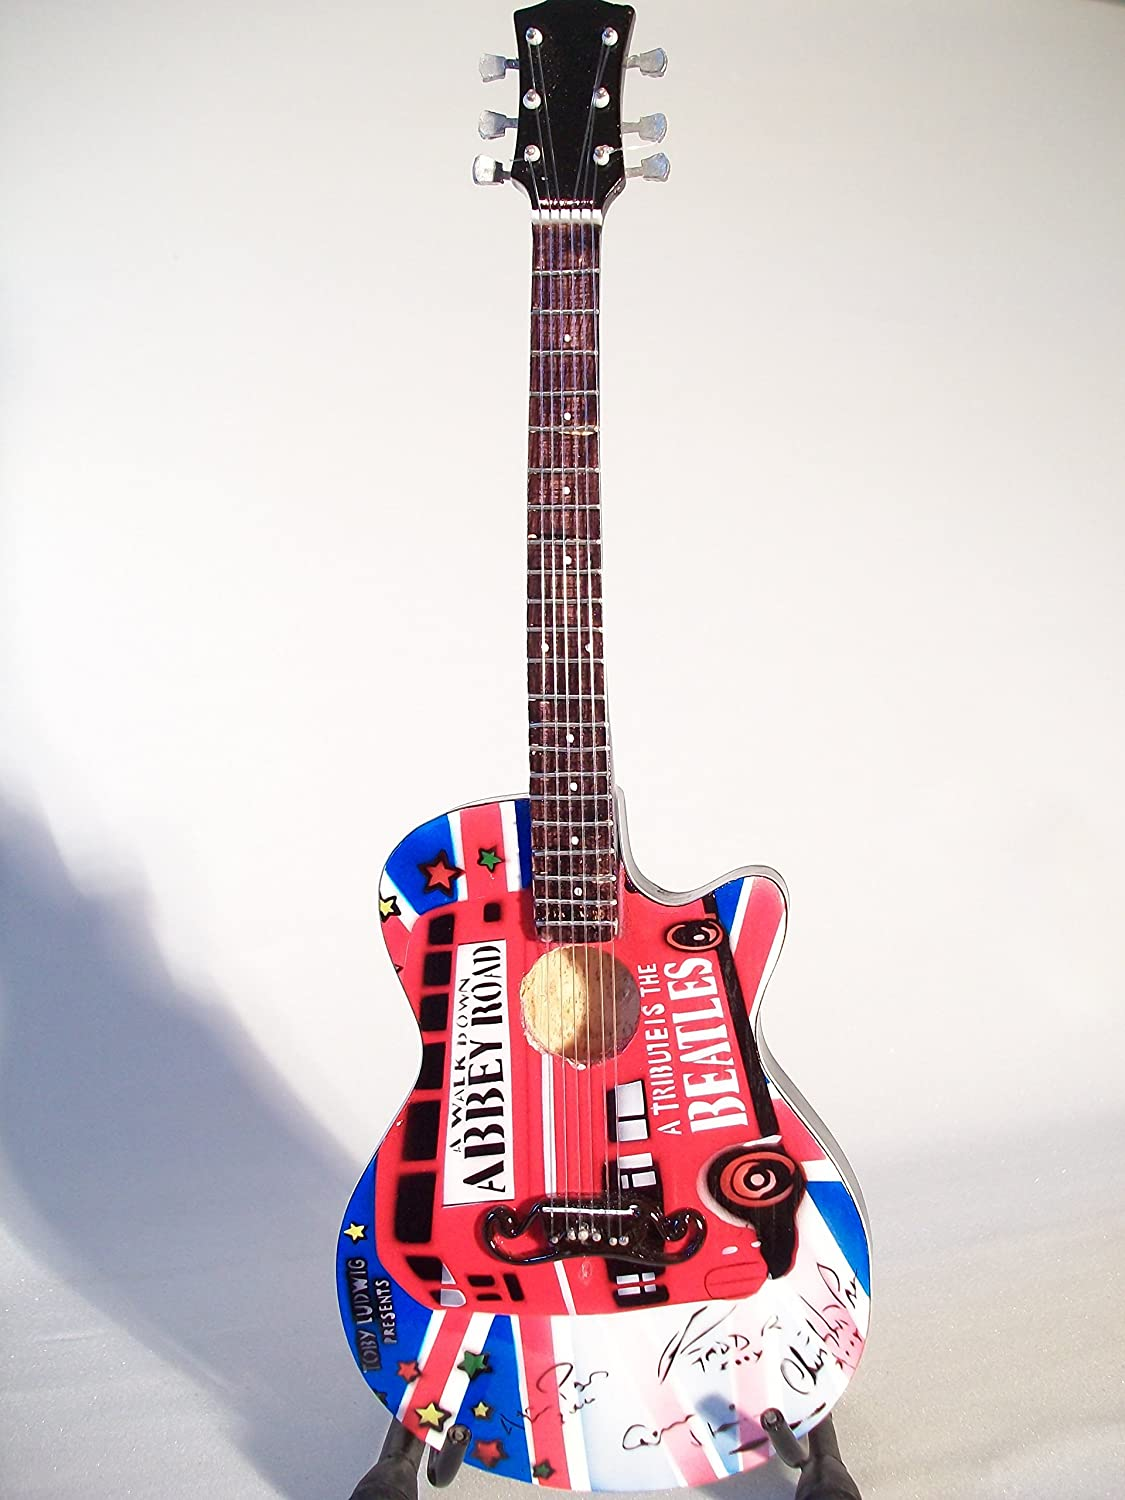 Mini guitarra de colección - Replica mini guitar - The Beatles - Tribute - Abbey Road - TOP SELLER: Amazon.es: Juguetes y juegos